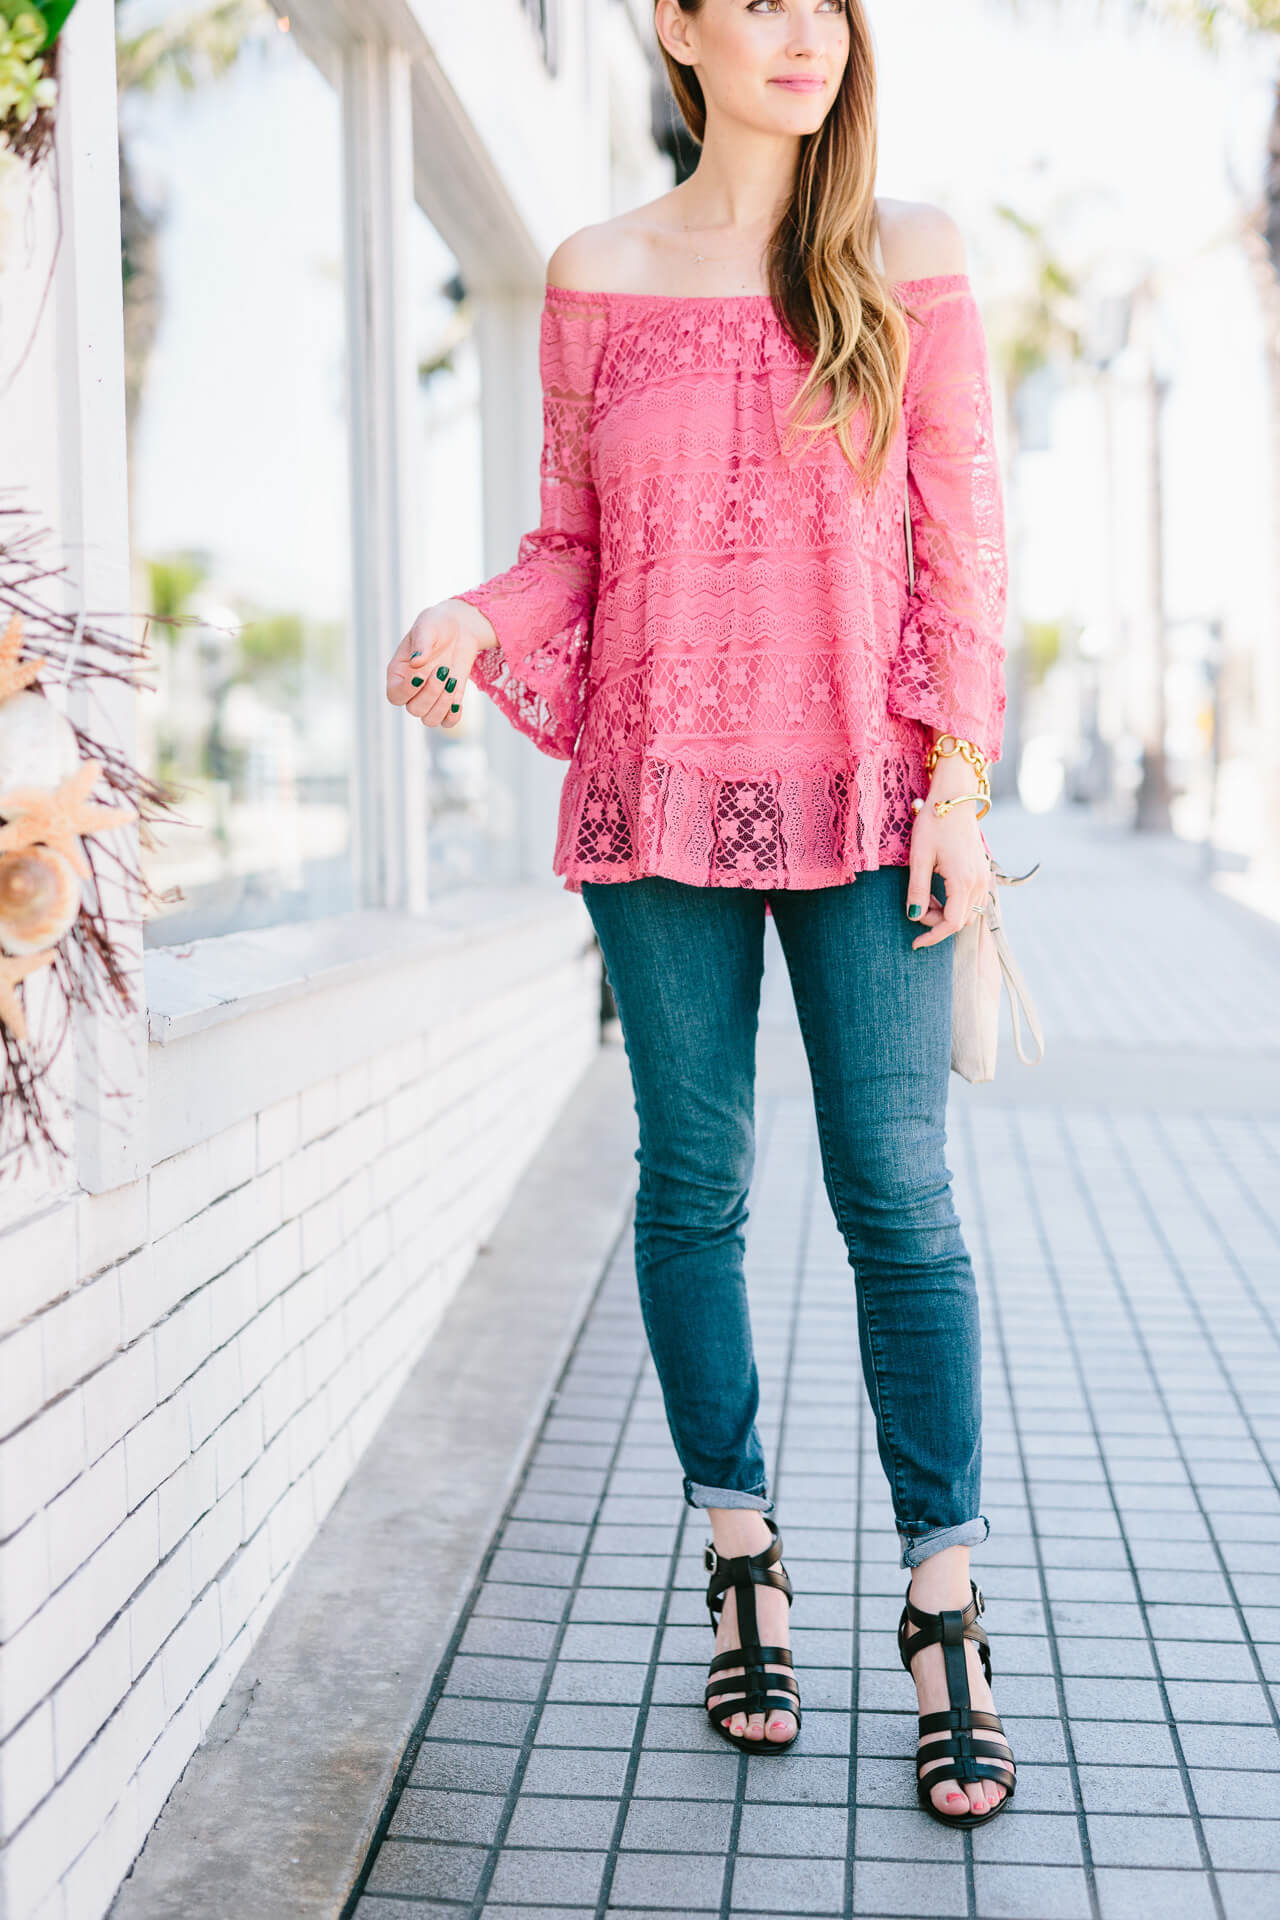 lace top styled with jeans and sandal heels